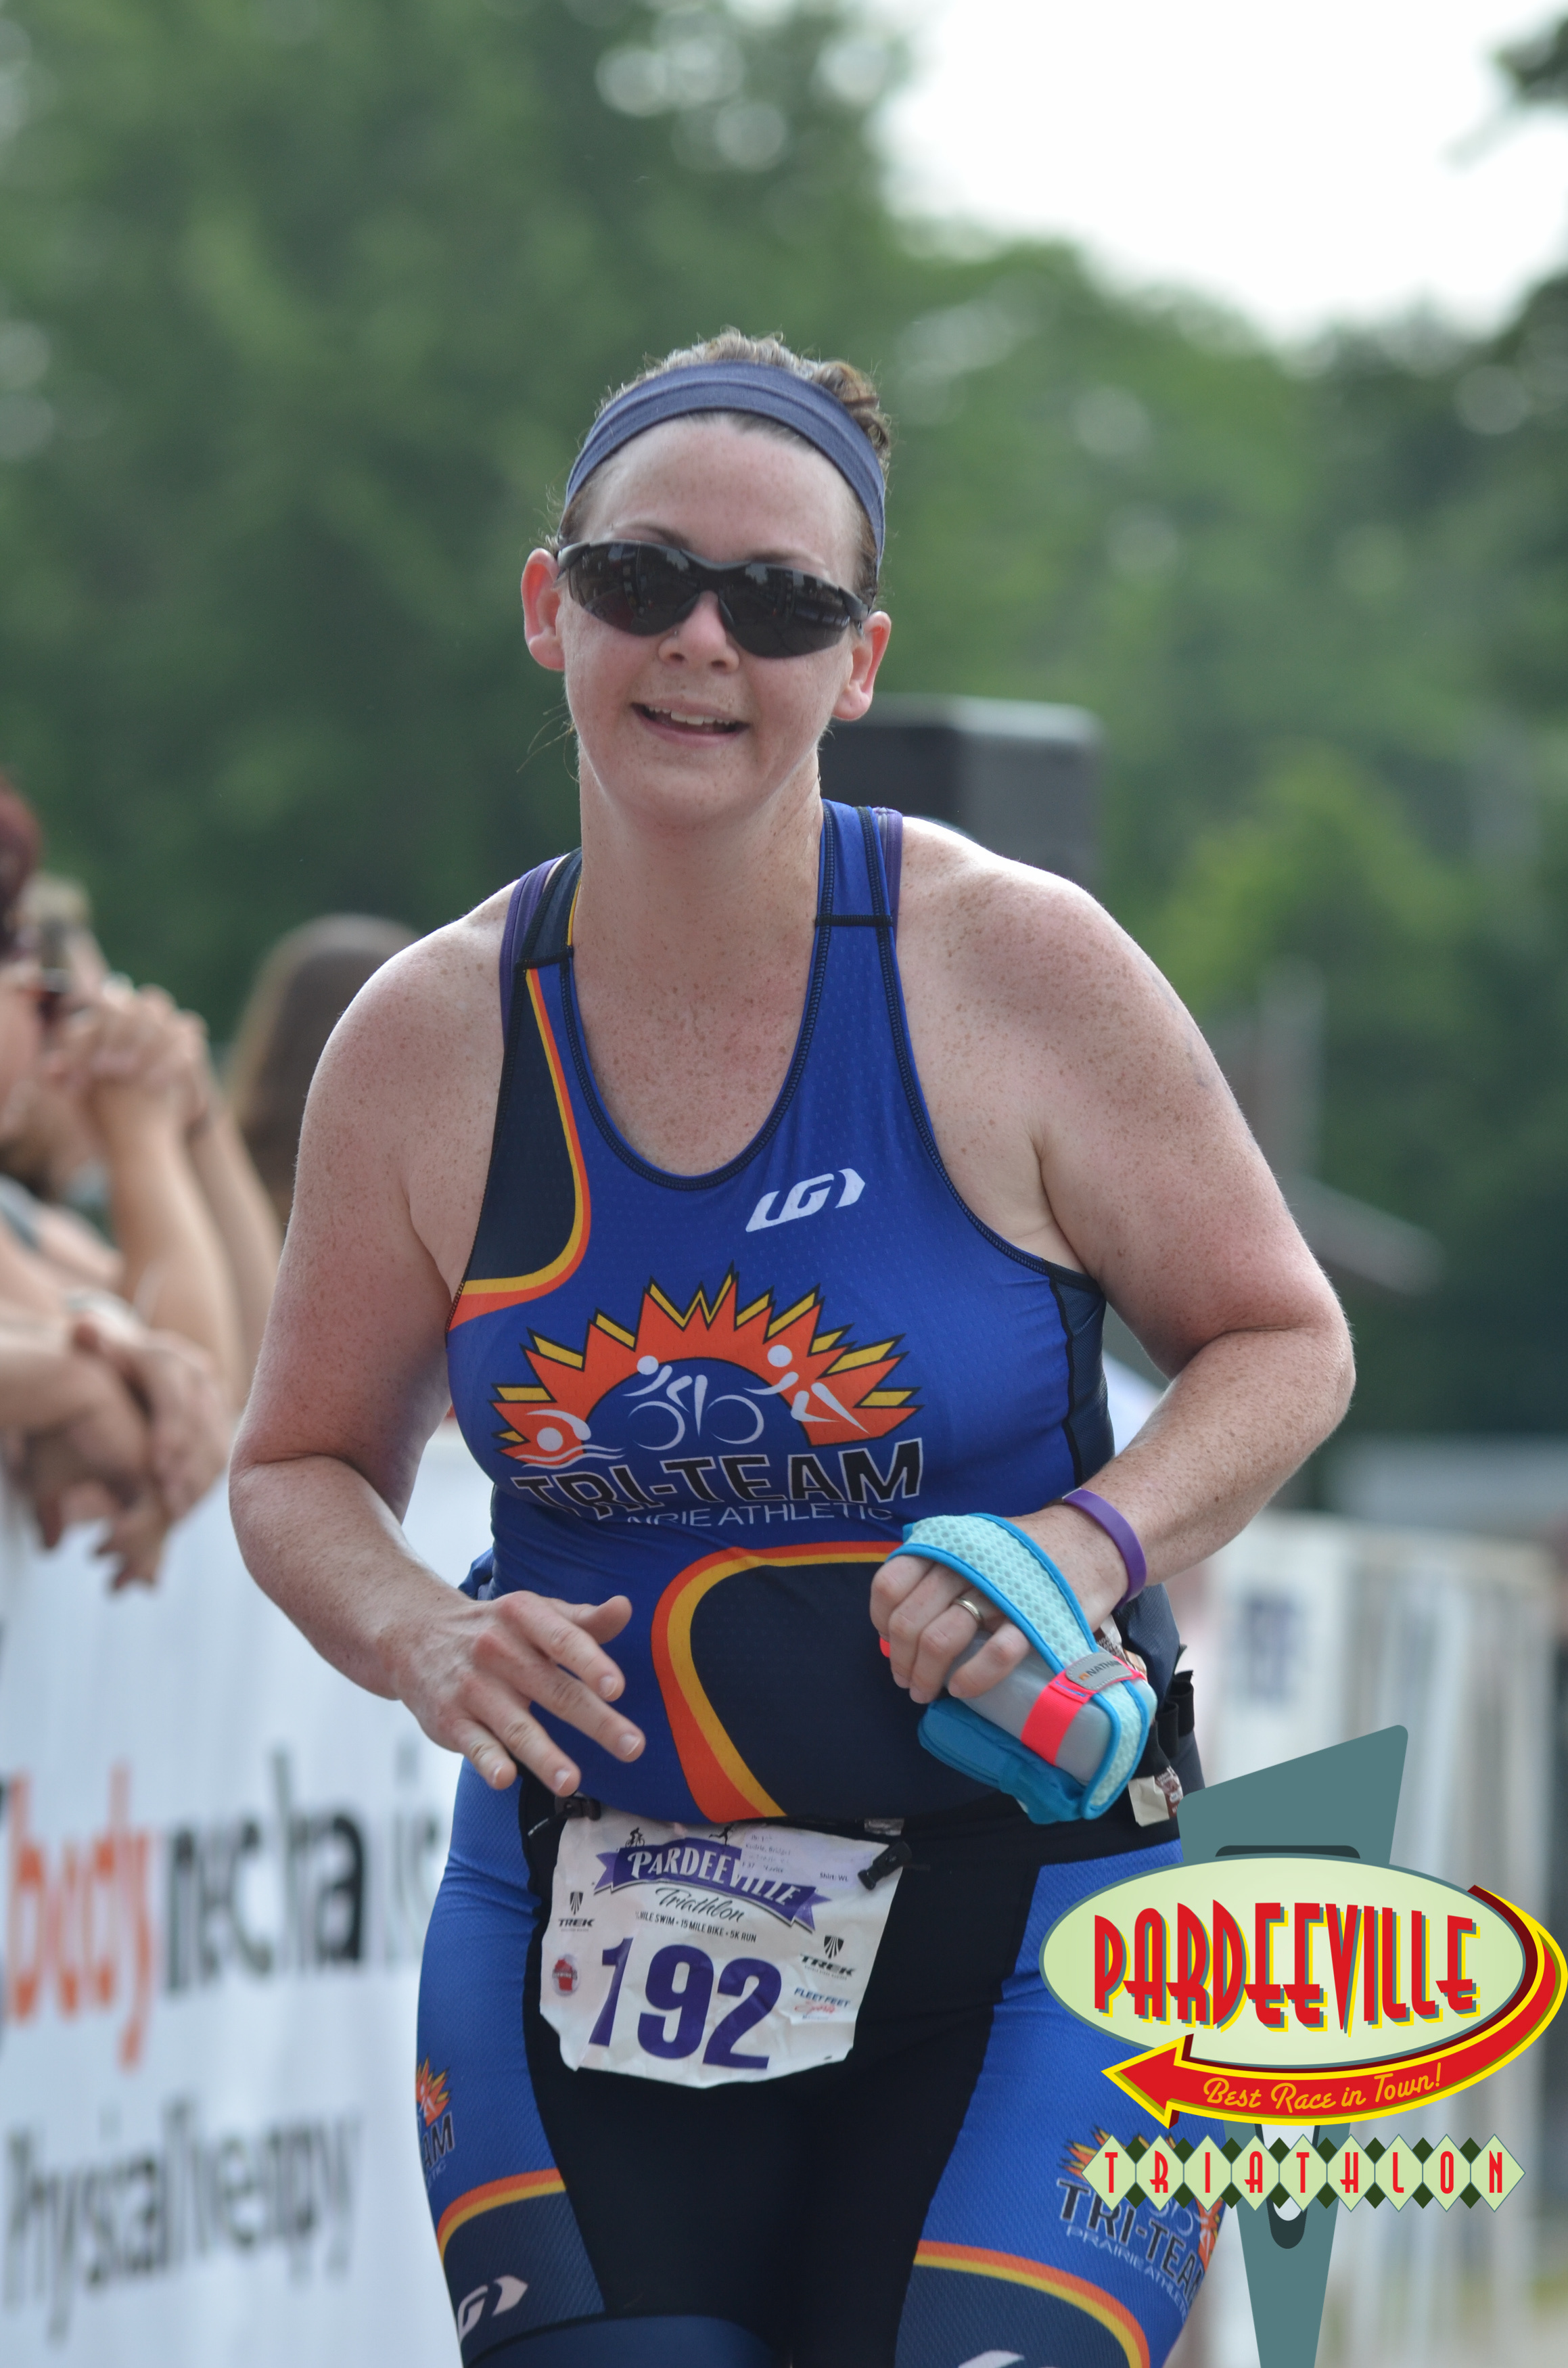 Bridget finishing strong at Pardeeville. Photo credit Will Hughes, Focal Flame Photography (c) 2015.